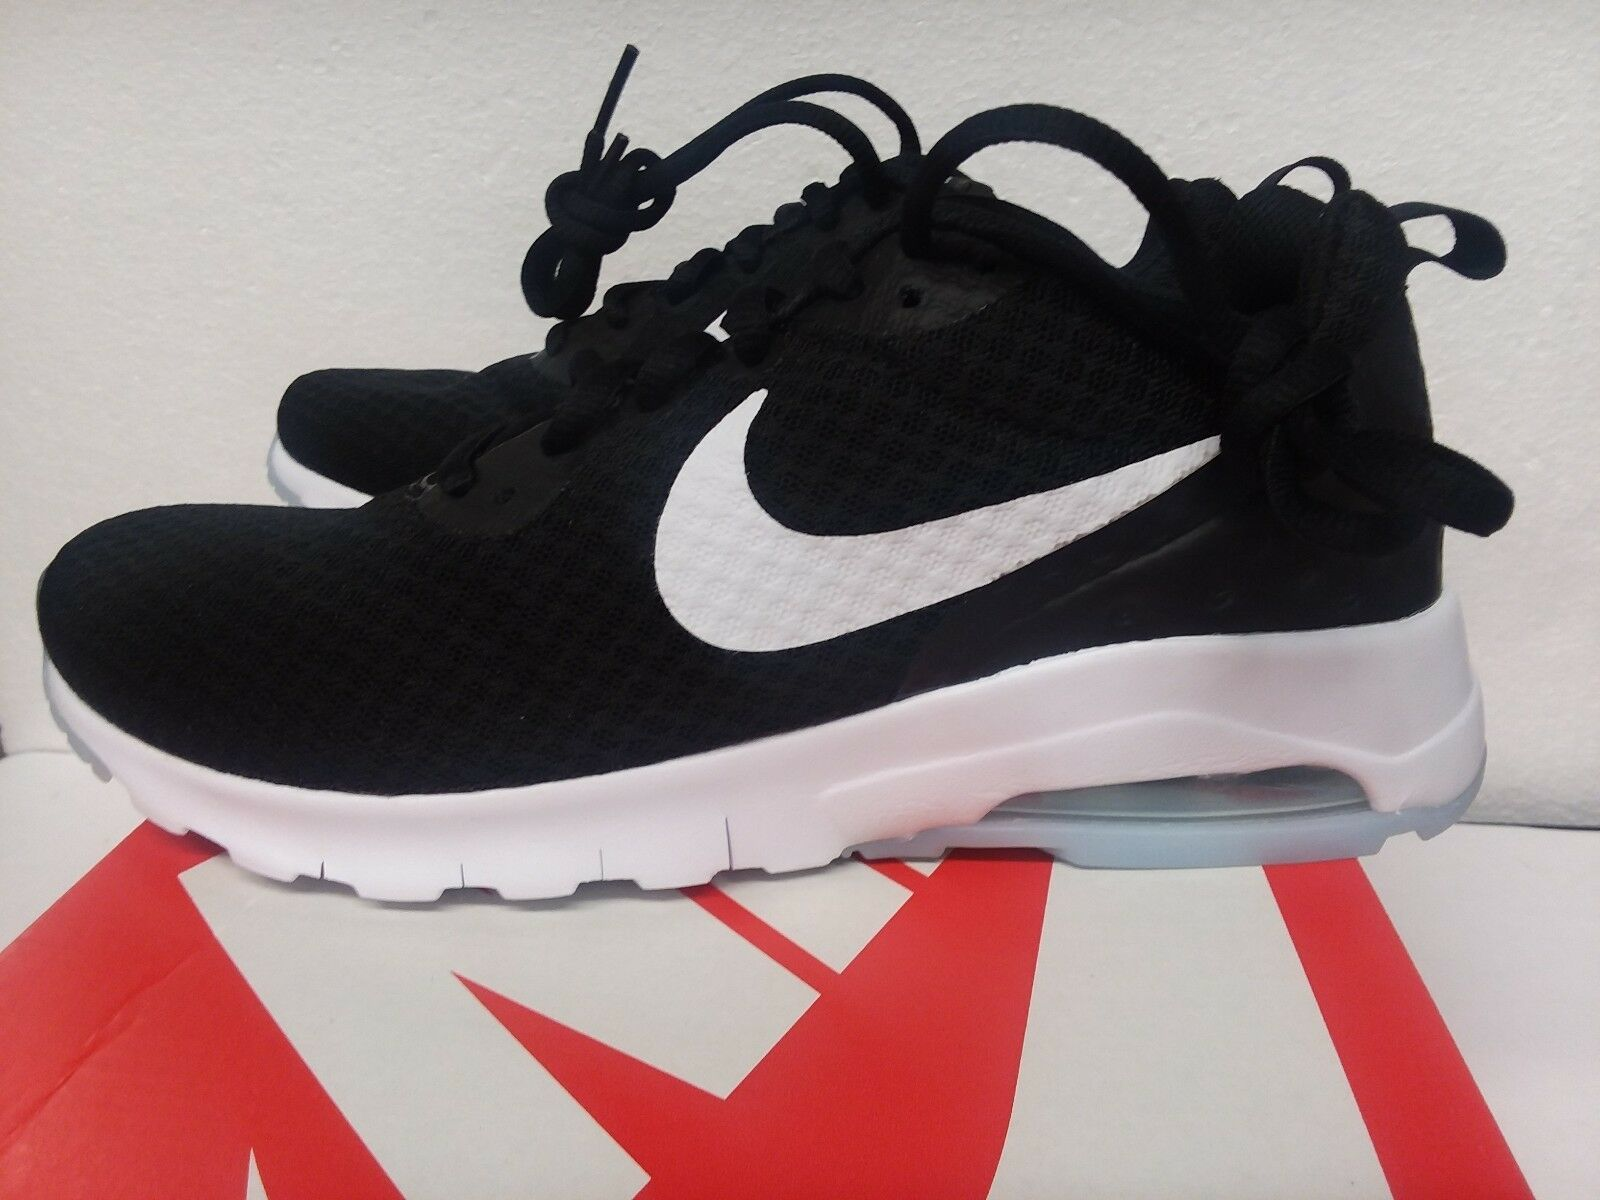 discount shop official supplier designer fashion Nike Air Max Motion LW, Women's Running and 31 similar items